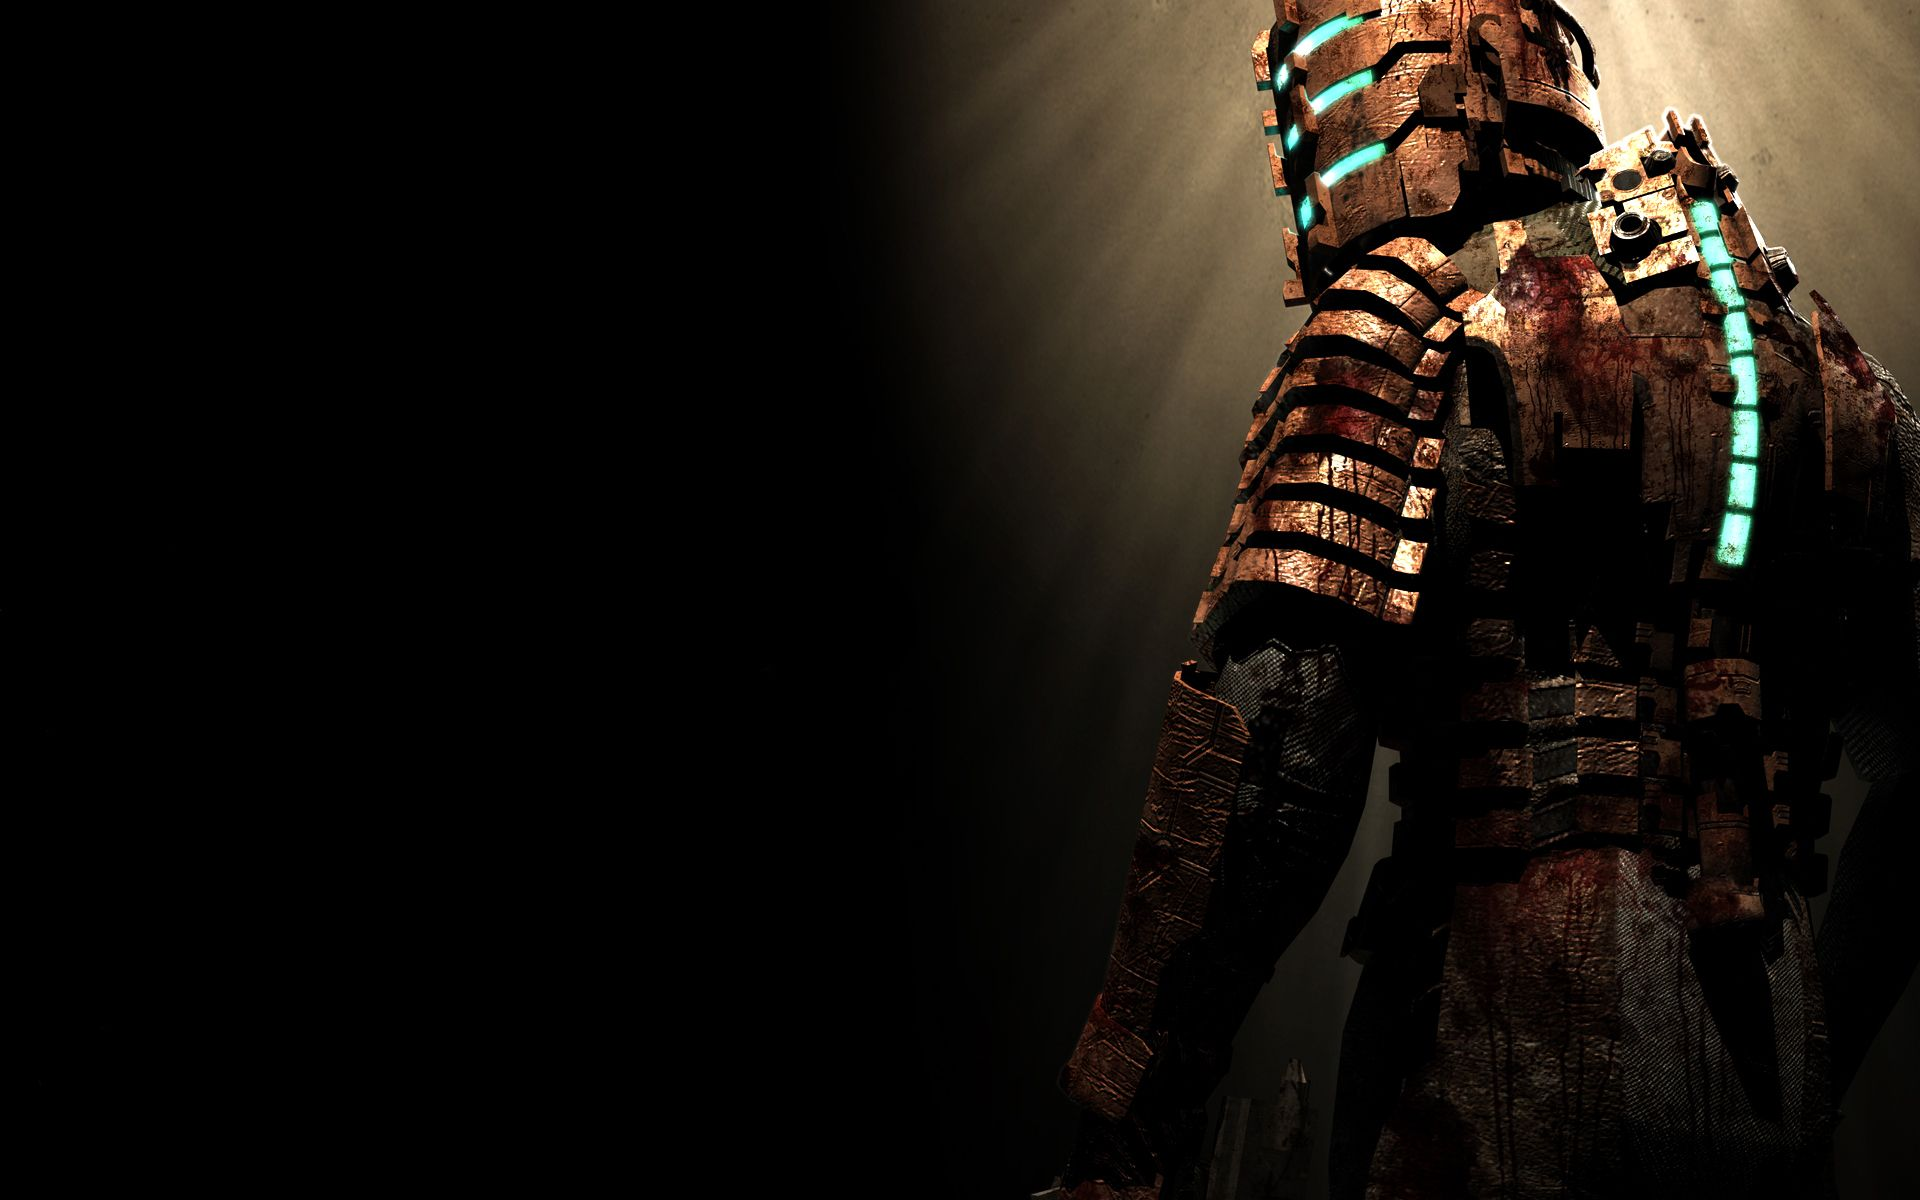 Dead Space 2 Wallpaper HD HD Wallpaper | Games Wallpapers